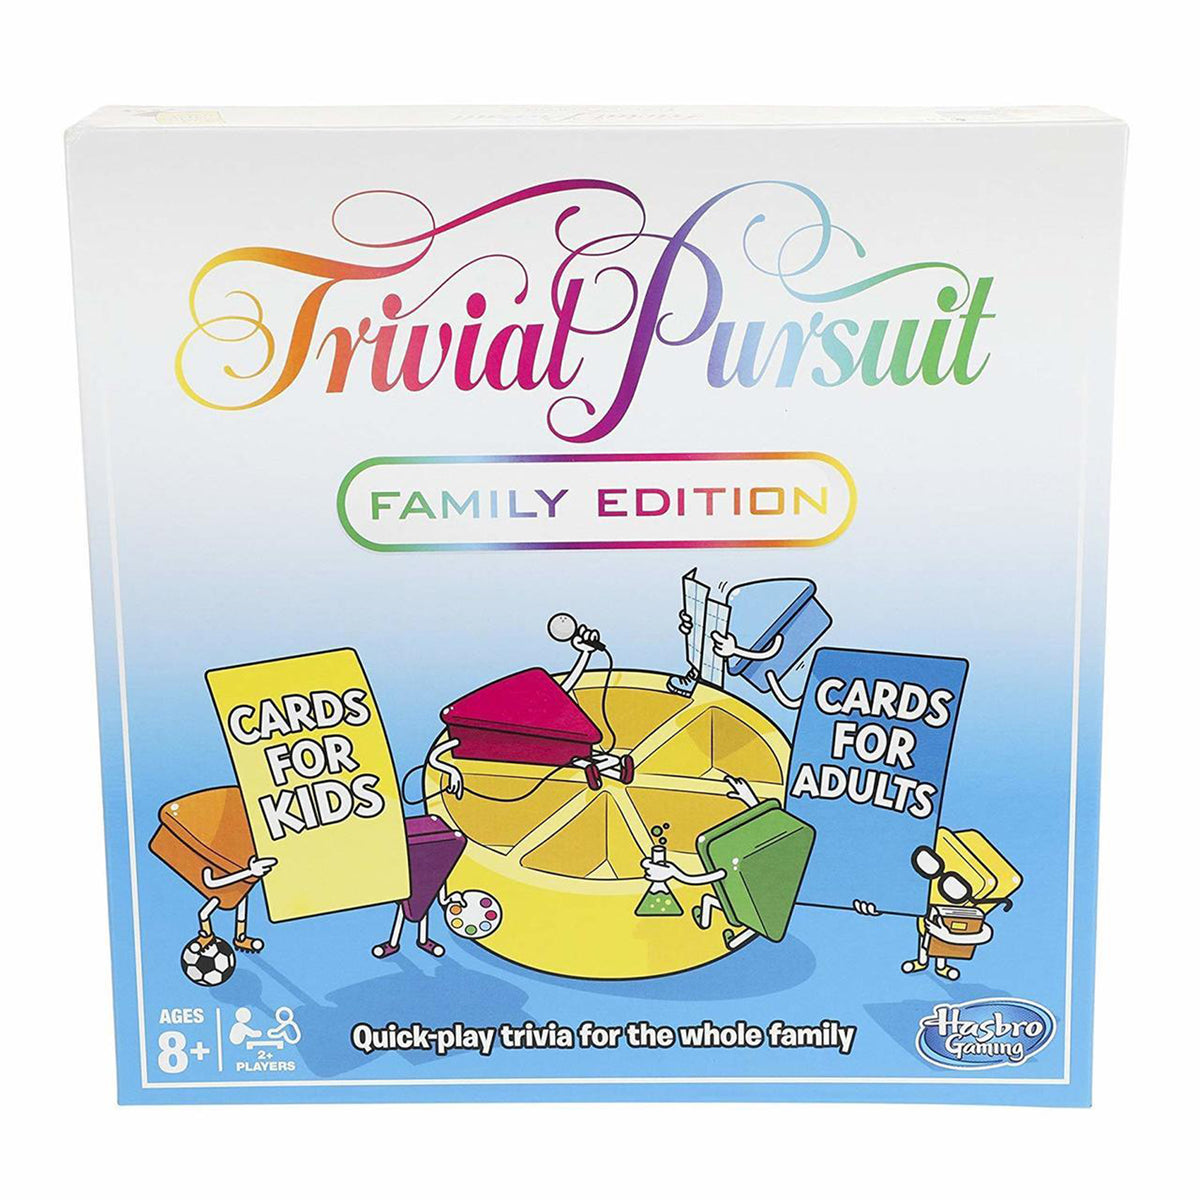 TRIVIAL PURSUIT FAMILY EDITION | Toyworld Frankston | Toyworld Frankston